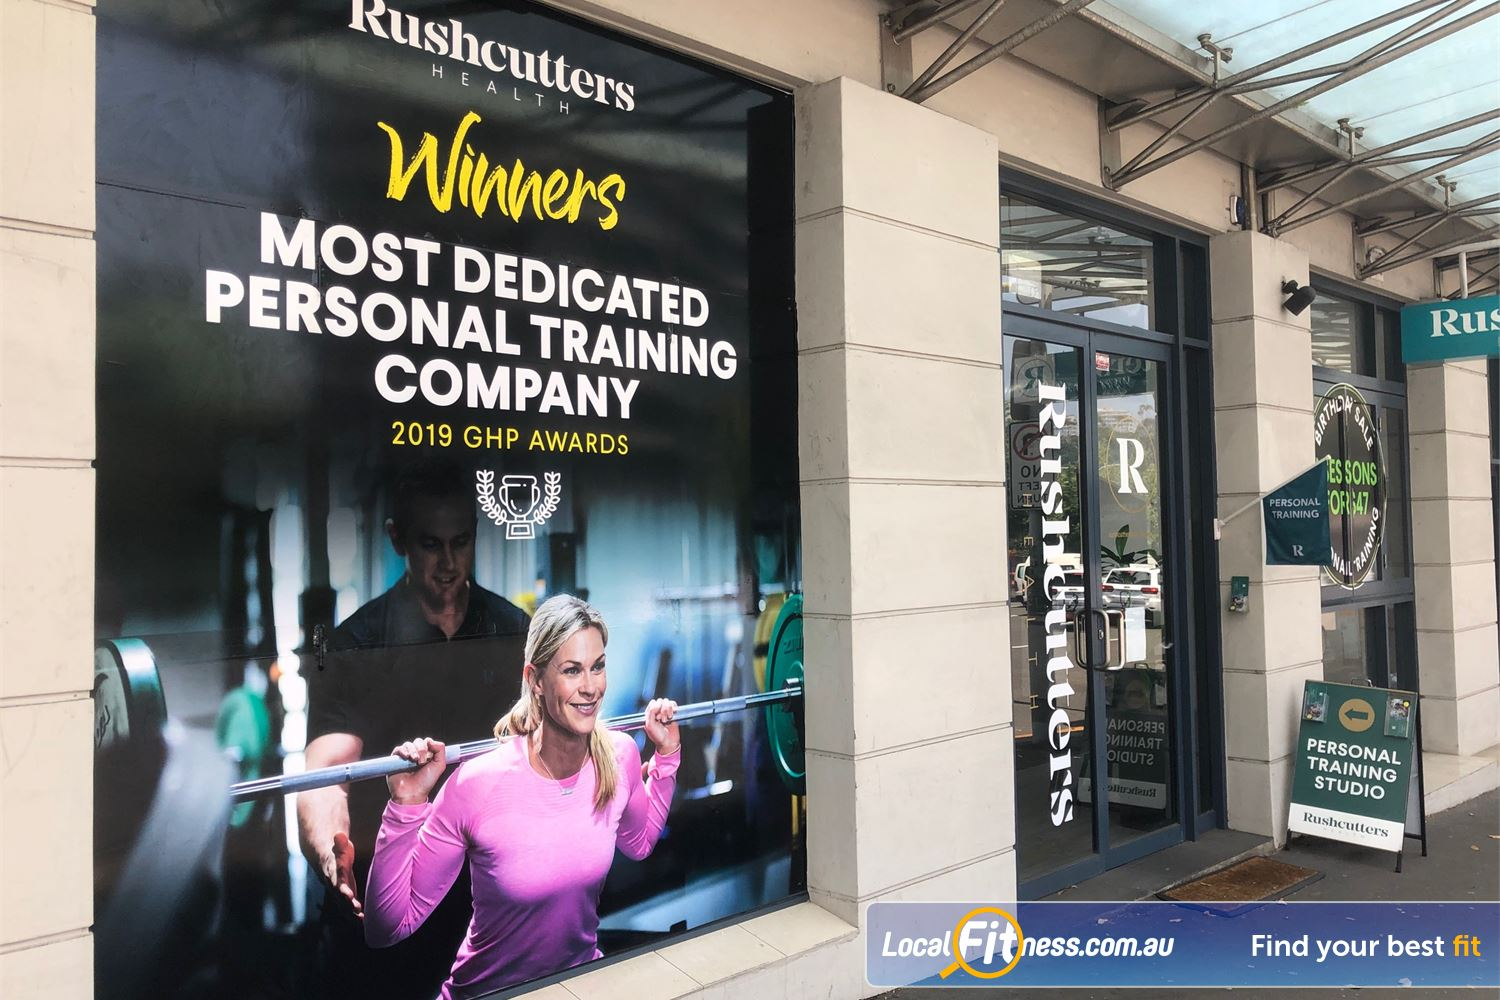 Rushcutters Health Near Paddington Our boutique gym is located underneath the Vibe hotel in Rushcutters Bay.